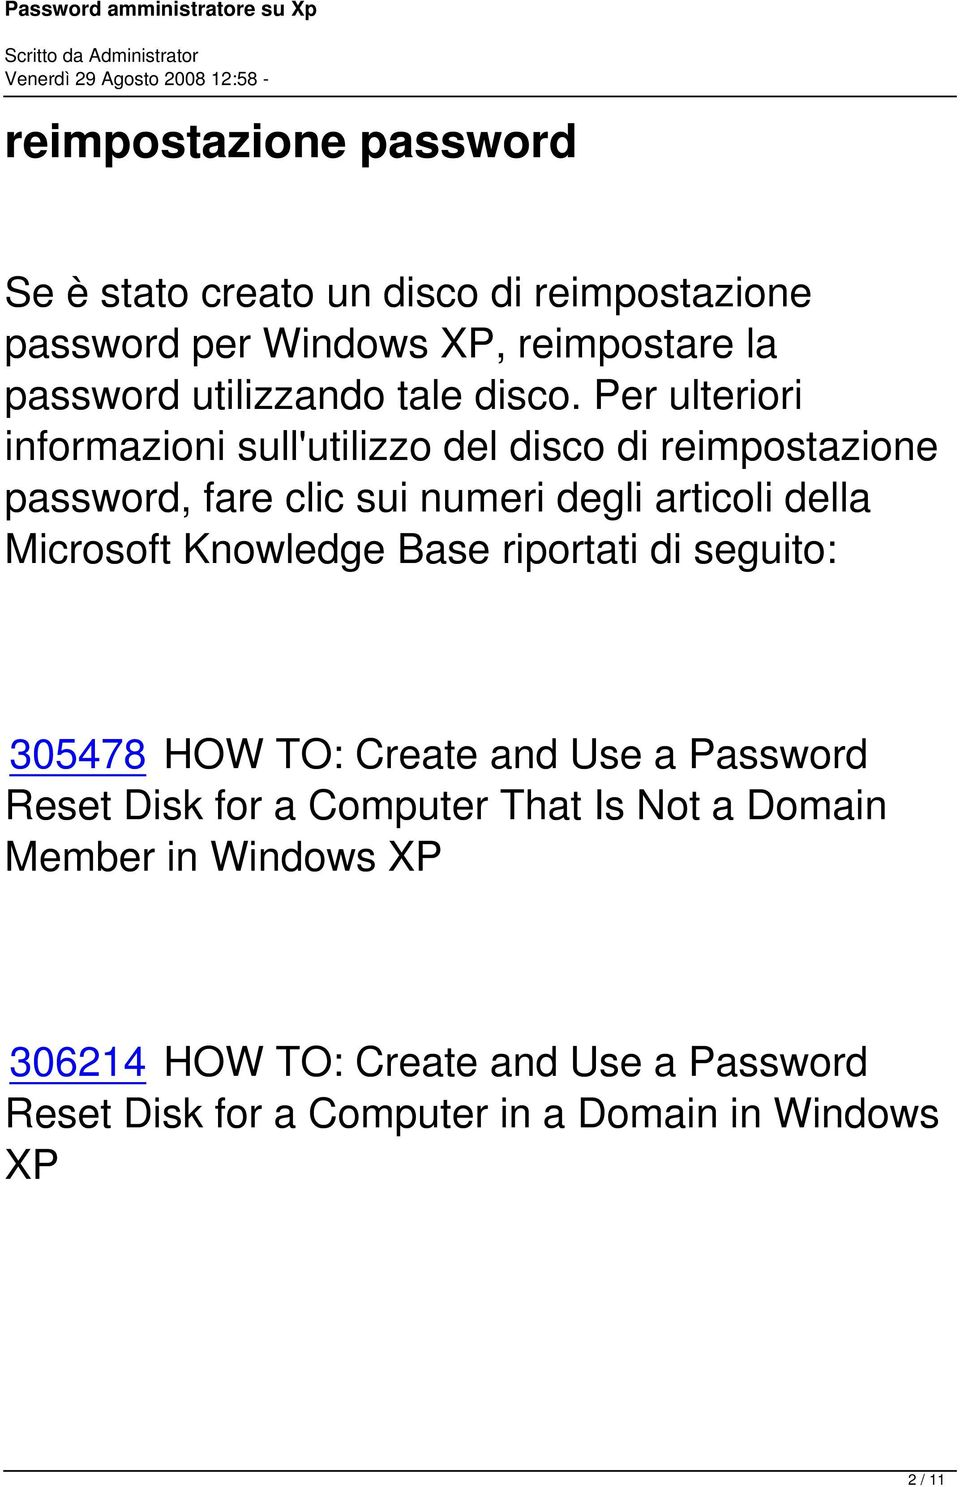 della Microsoft Knowledge Base riportati di seguito: 305478 HOW TO: Create and Use a Password Reset Disk for a Computer That Is